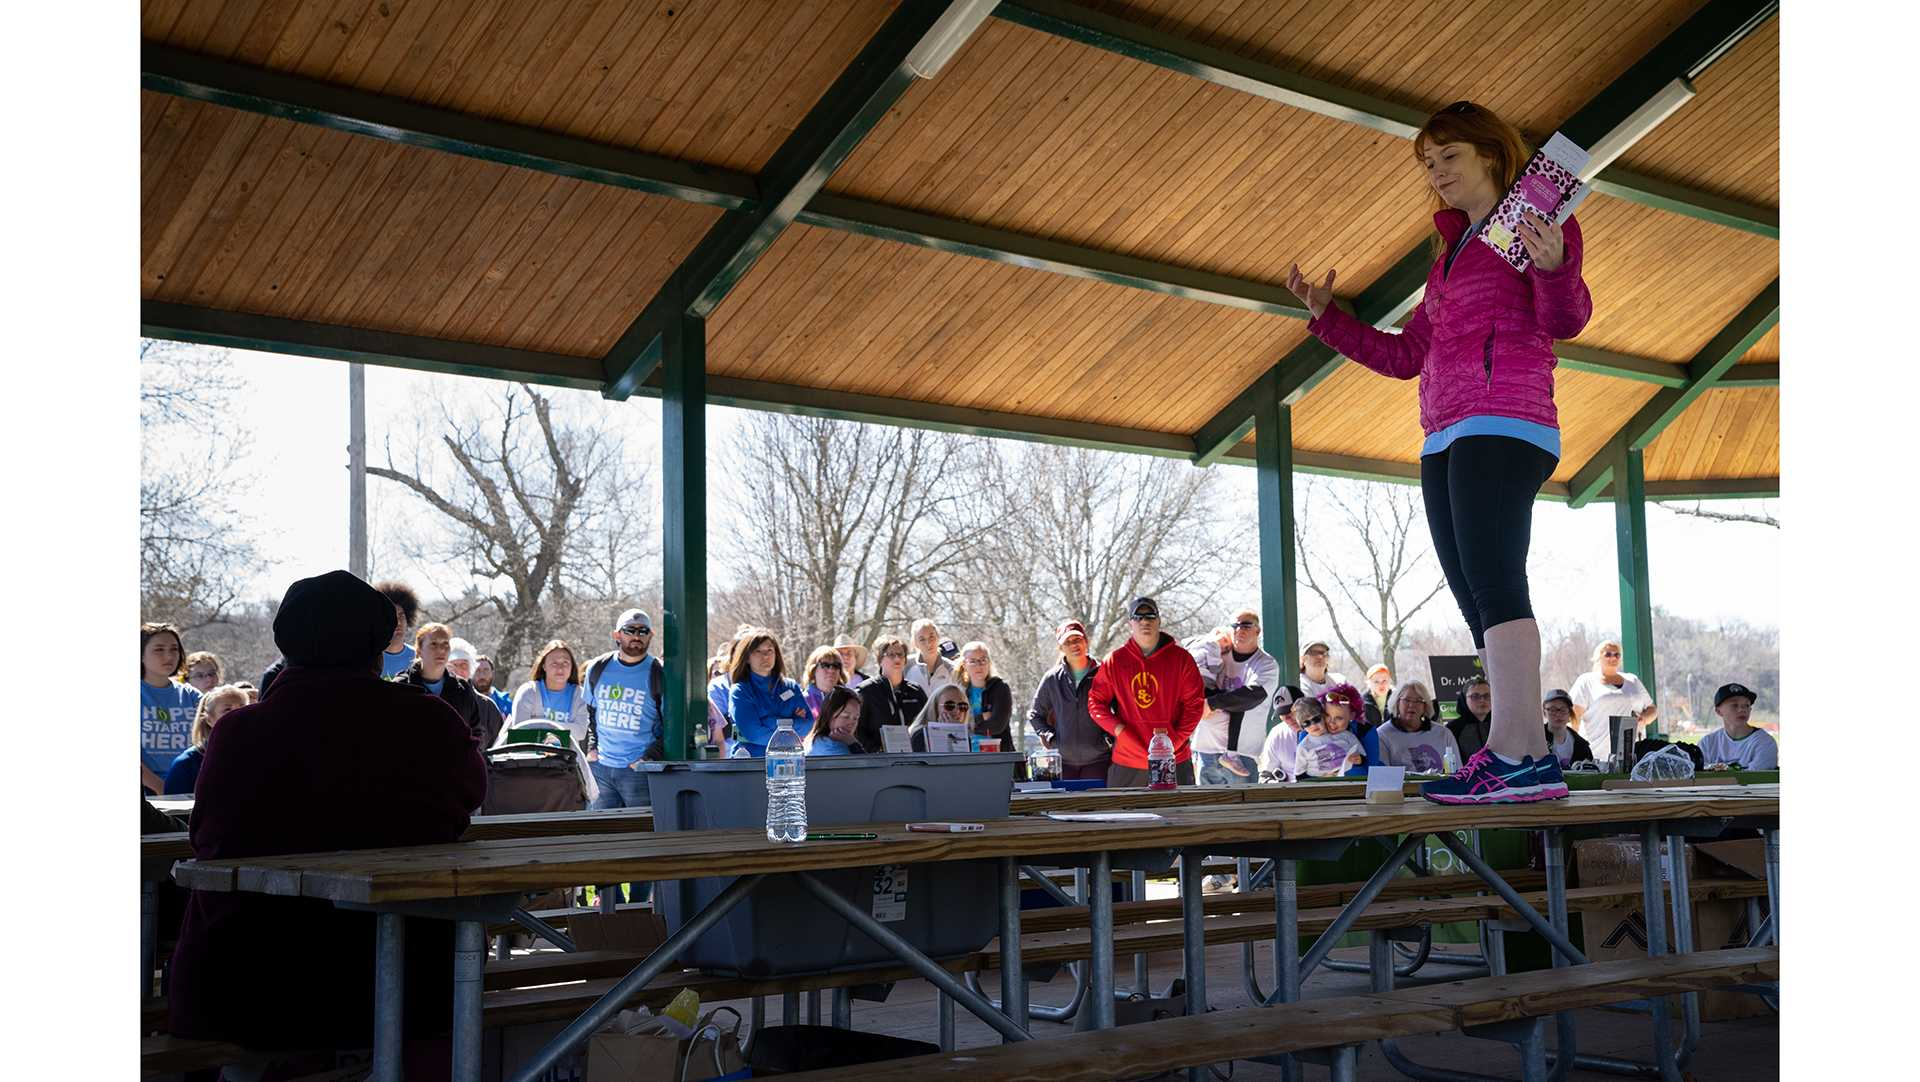 Jennifer O'Toole speaks during a National Eating Disorders Awareness event in City Park on Saturday, April 29, 2018. O'Toole overcame anorexia and is now a renowned author and public speaker. (Matthew Finley/The Daily Iowan)